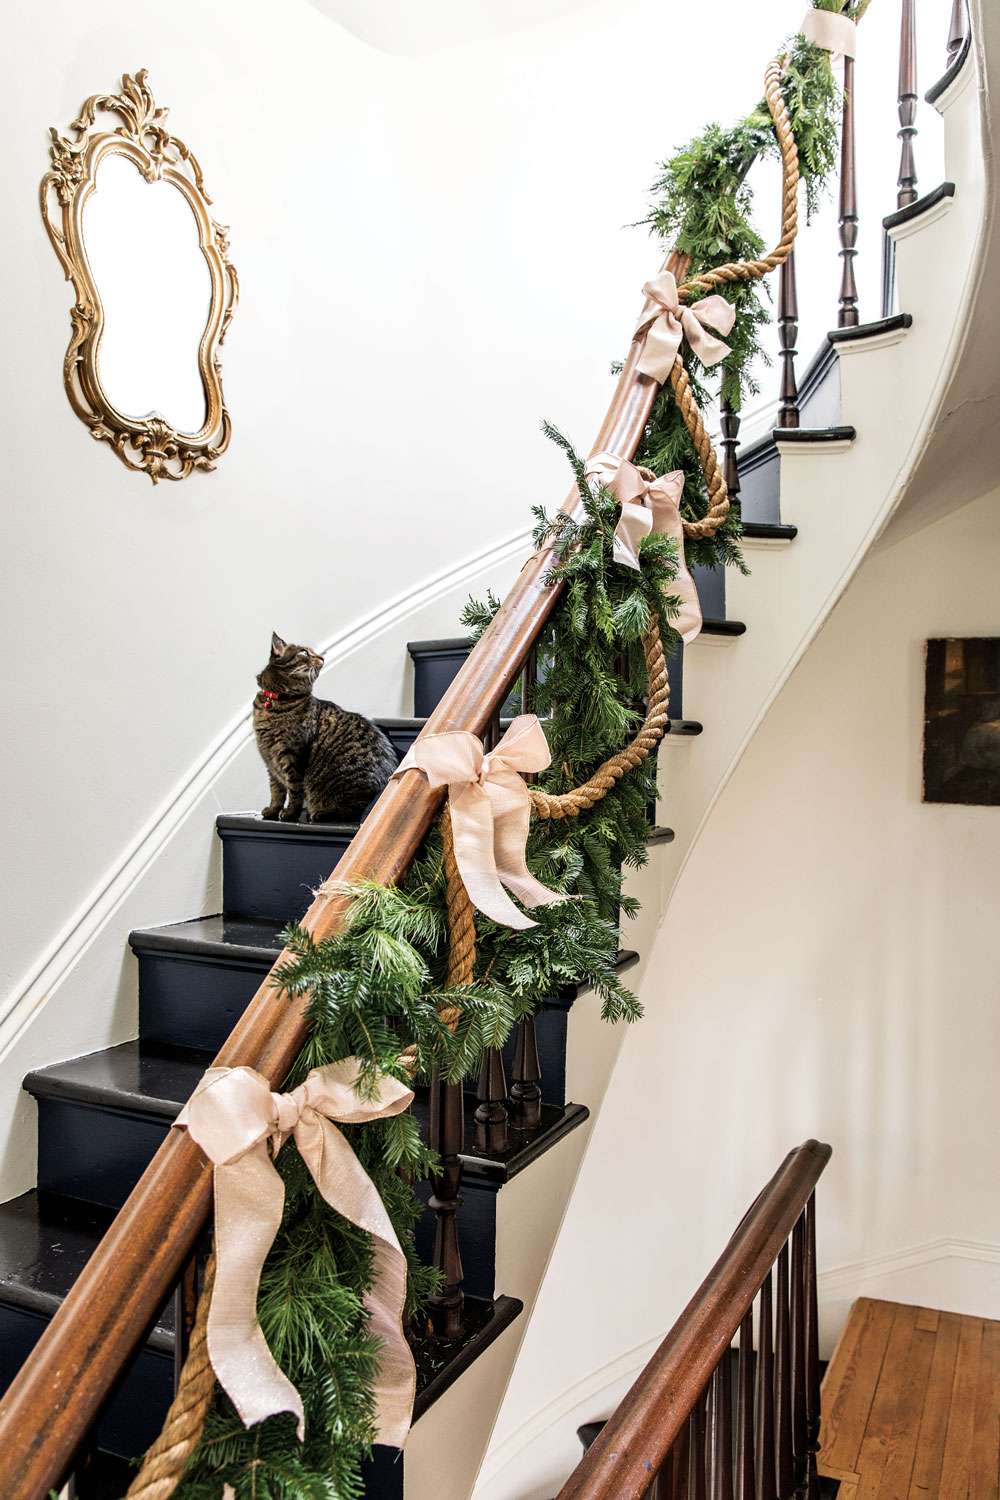 holiday décor ideas, garland on a staircase accented with nautical rope and ivory bows